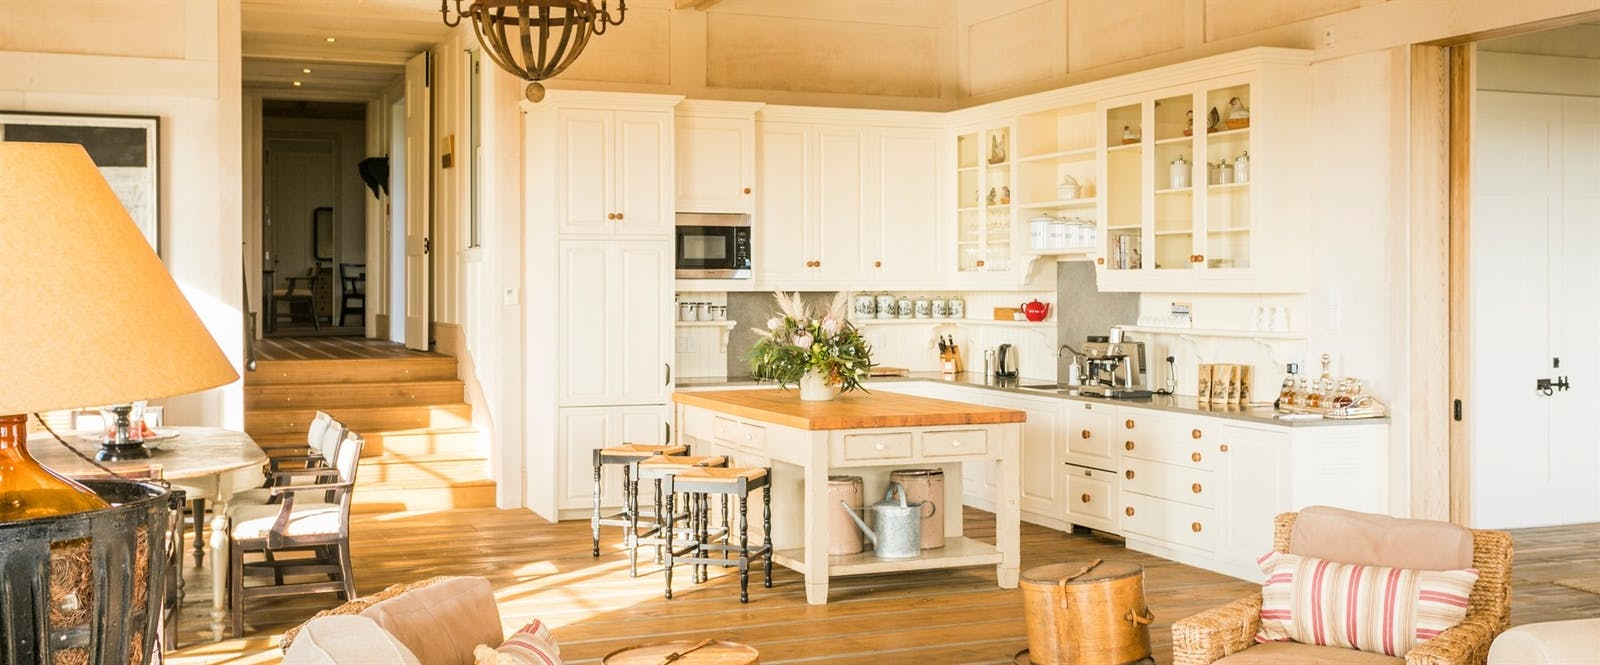 Owner's Cottage Kitchen at The Farm at Cape Kidnappers, Hawke's Bay